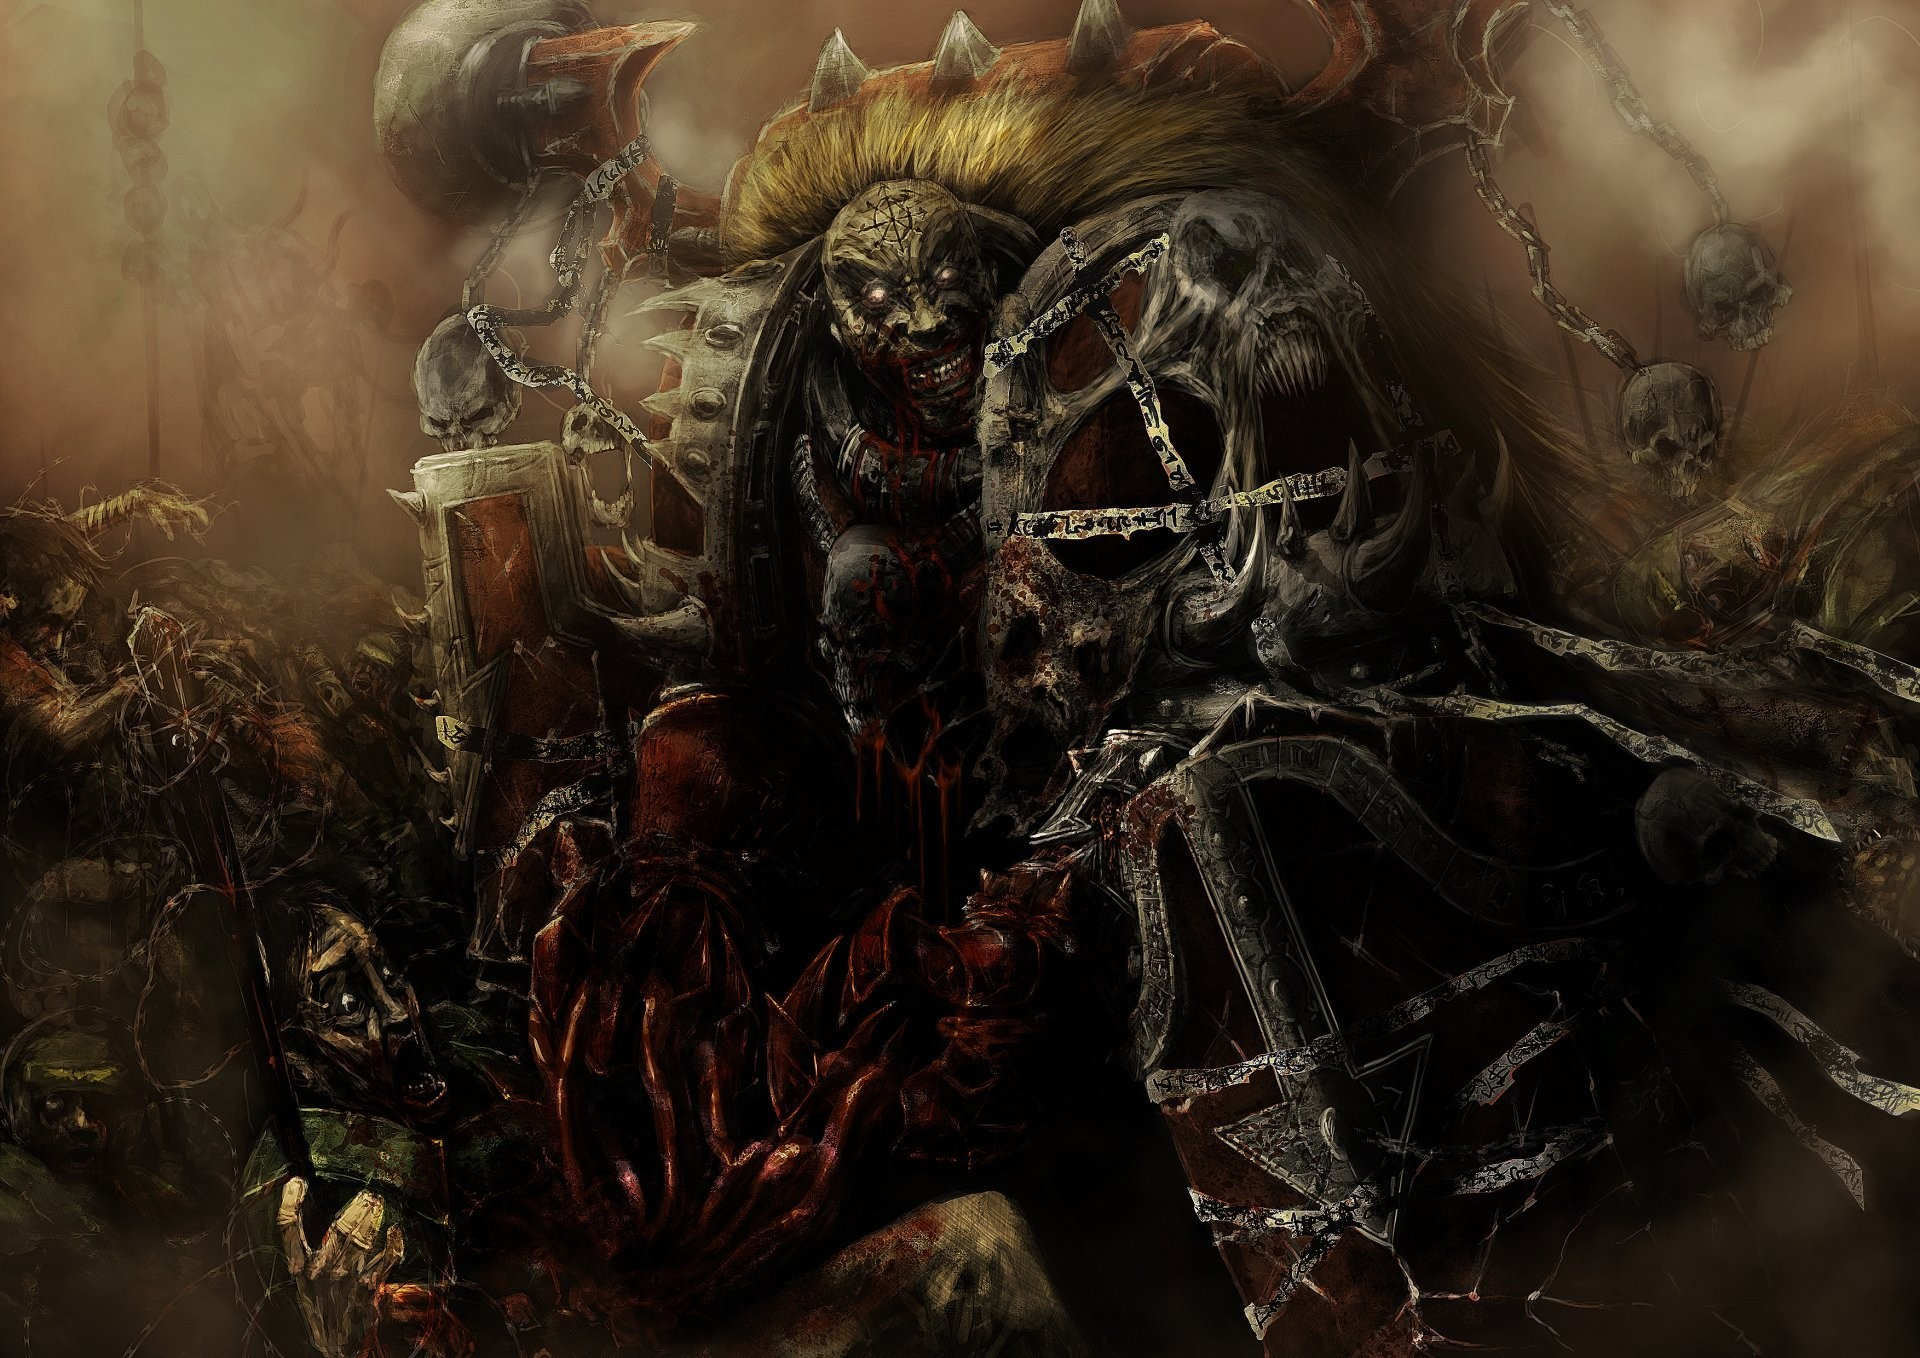 1920x1358 warhammer 40k chaosmarine word bearers varhamer chaos bearing the word  armour blood madness skull imperial guard